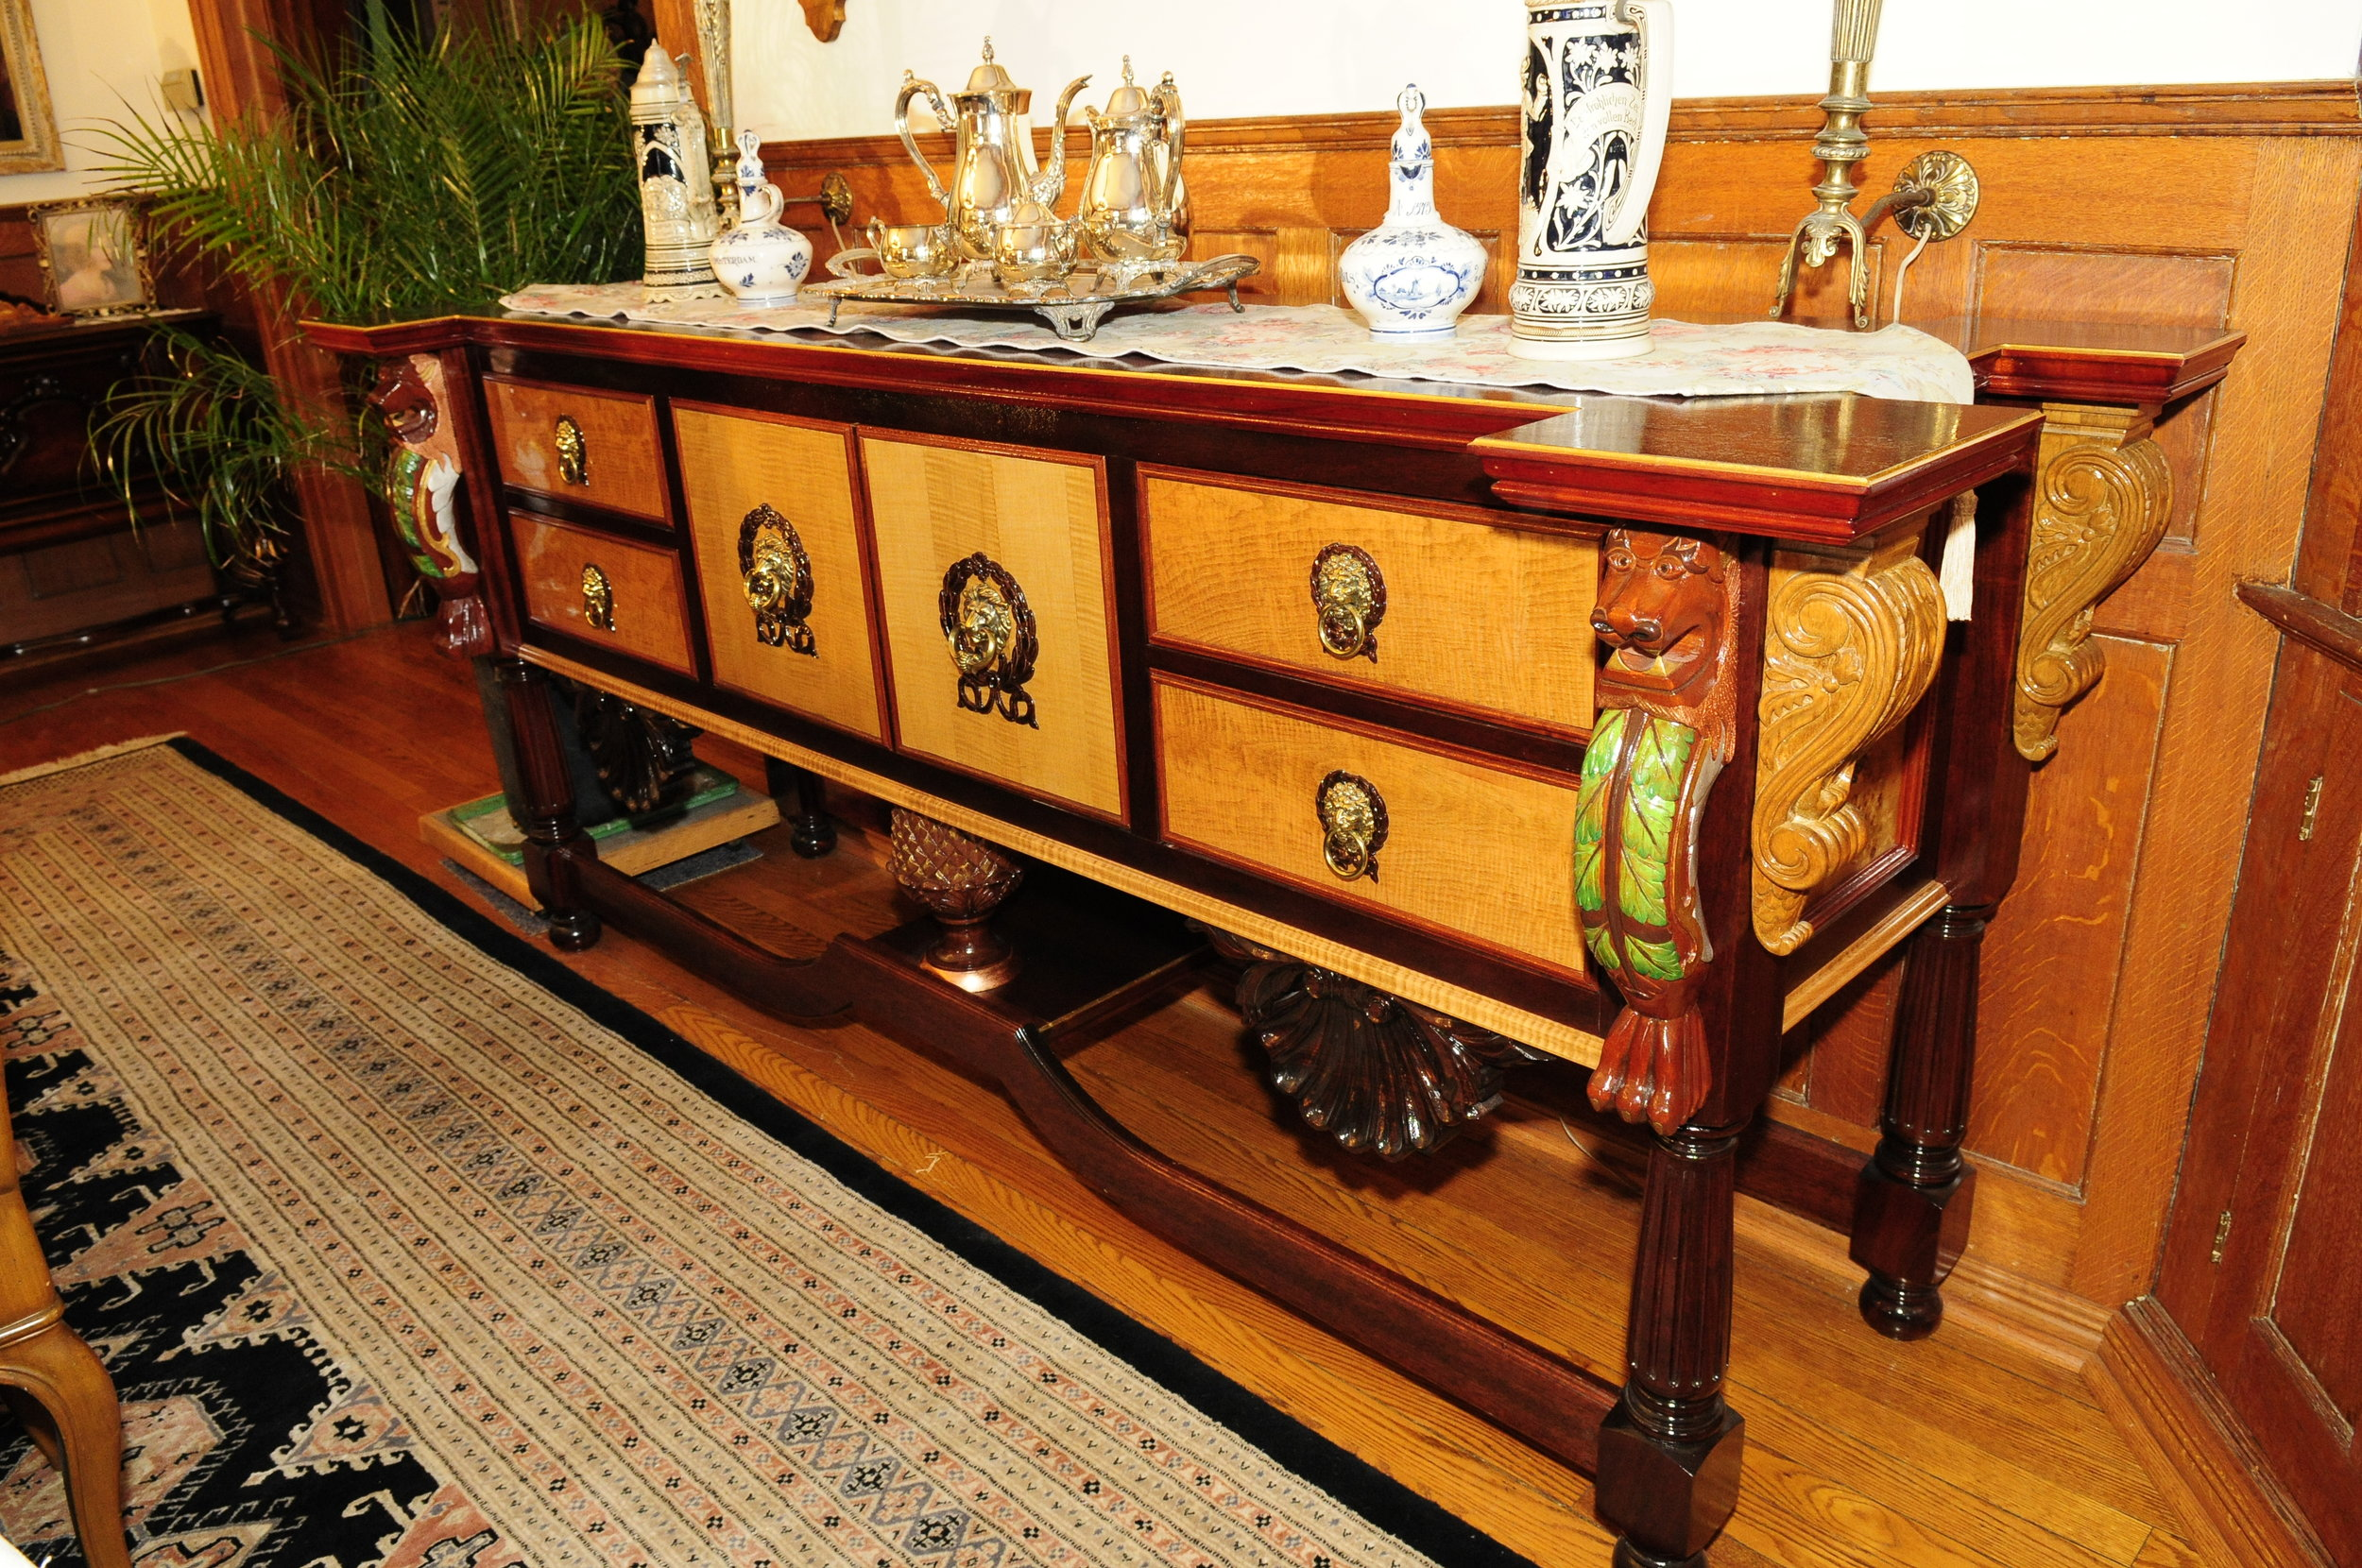 Larry designed and built this Server using several species of Mahogany.